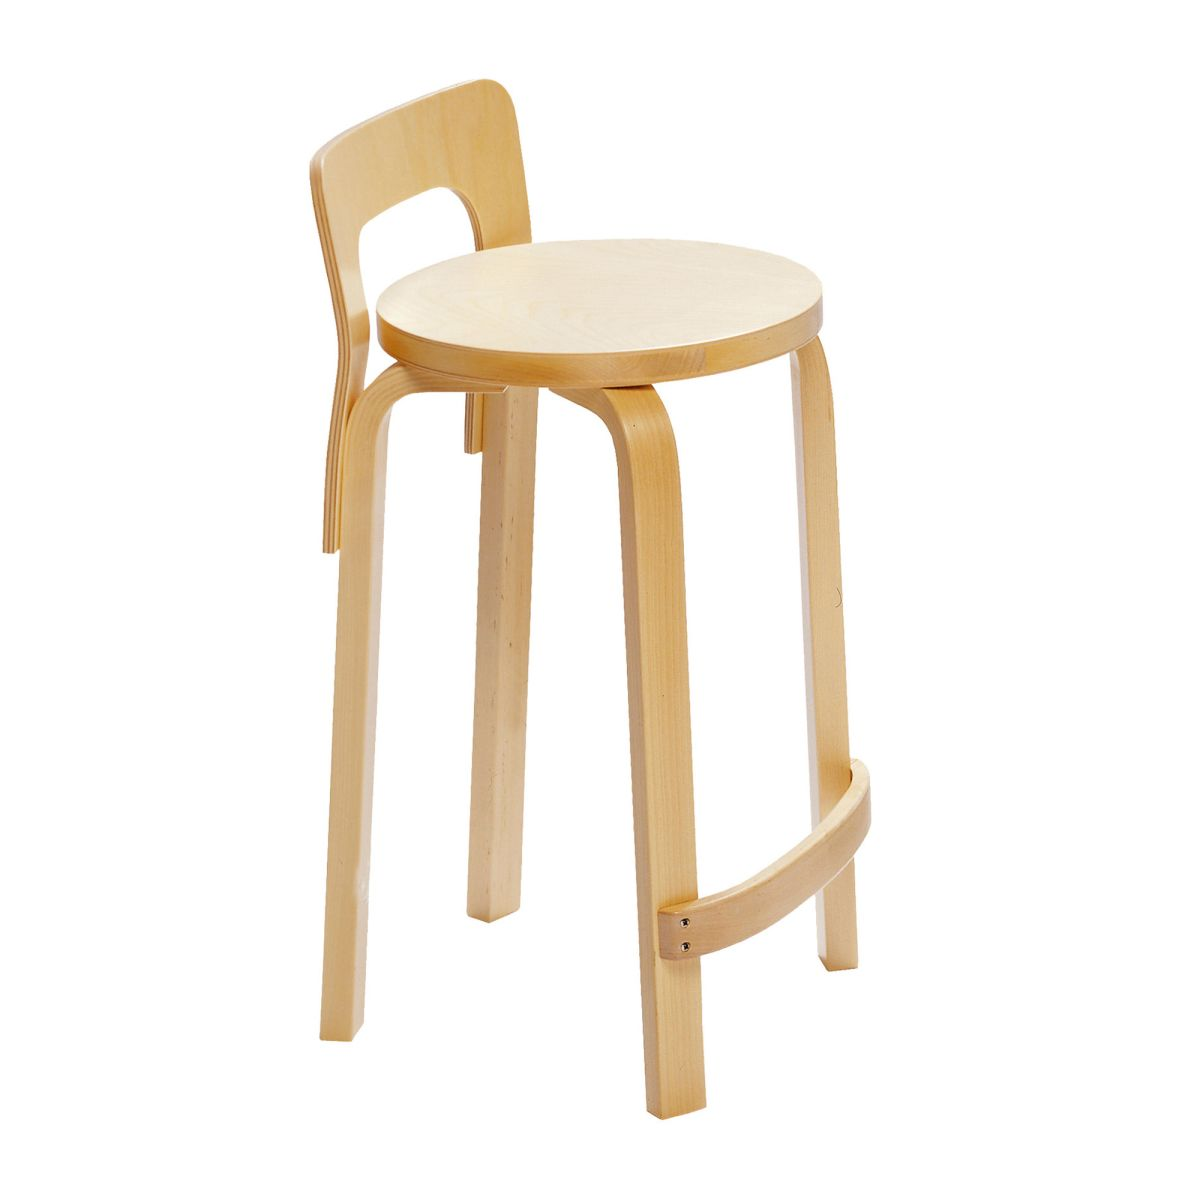 bar stool baby high chair rent tables and chairs cheap artek products